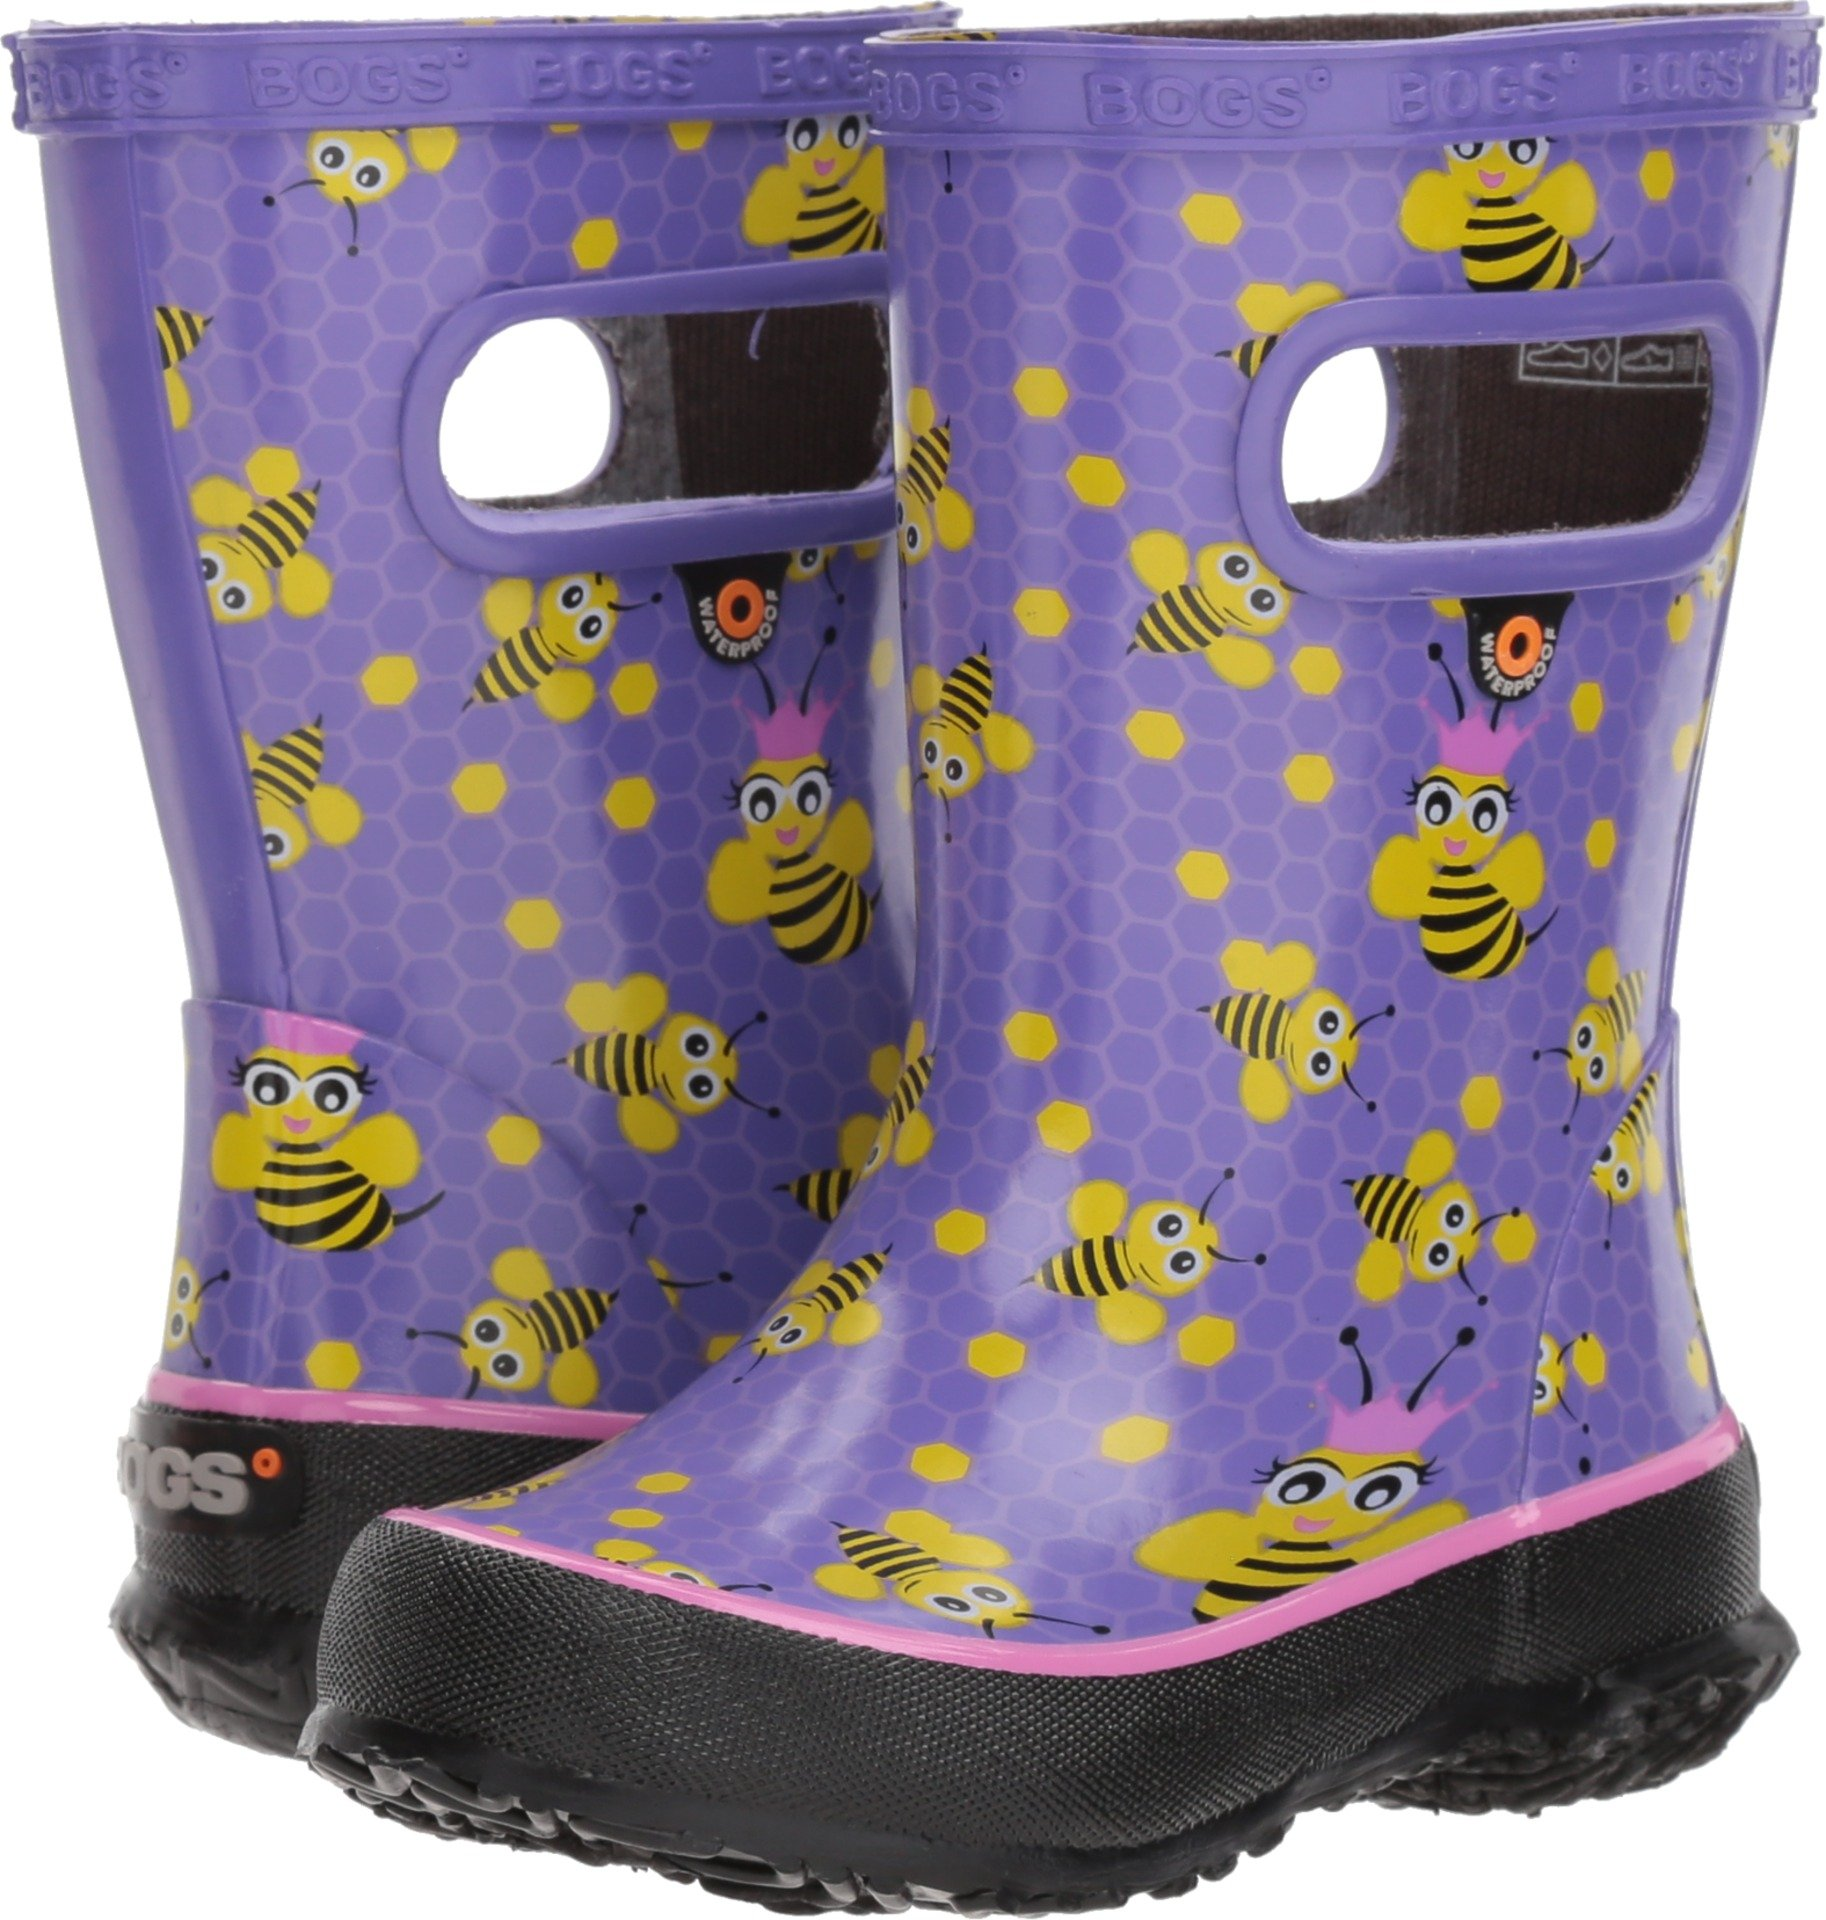 Bogs Skipper Kids Waterproof Rubber Rain Boot for Boys and Girls, Bees Print/Lavender/Multi, 13 M US Little Kid